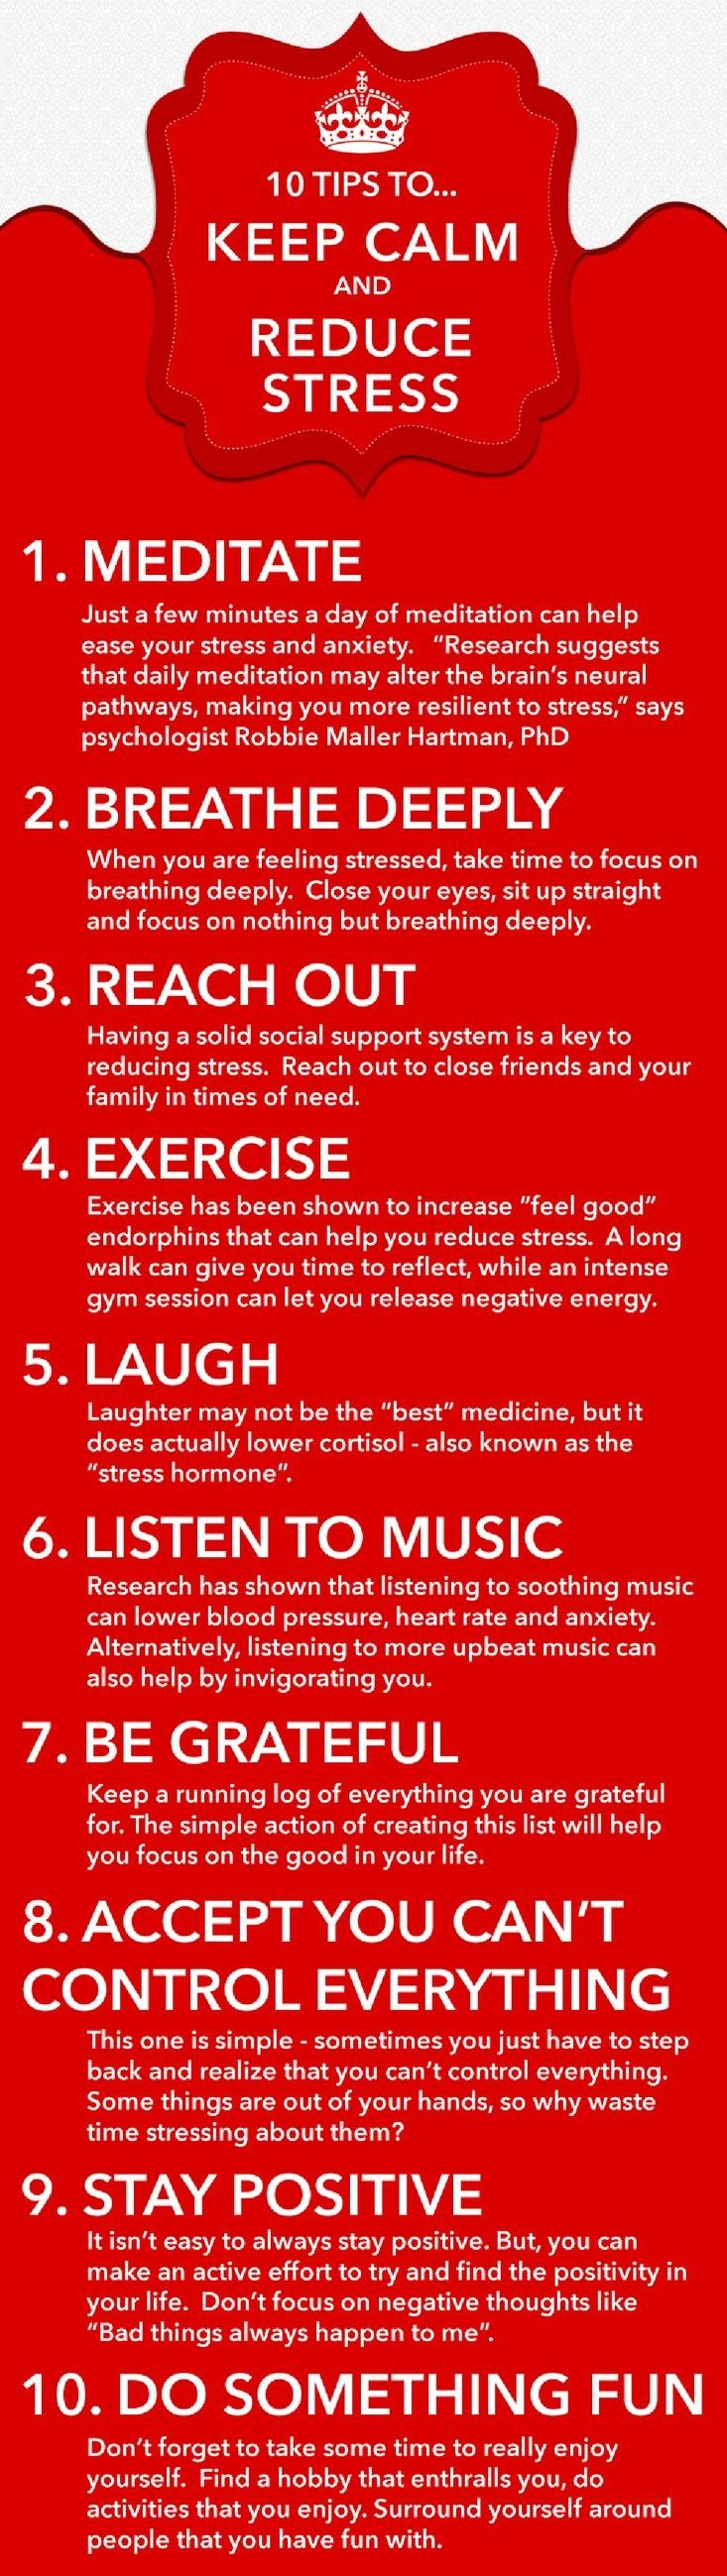 Keep Clam and Reduce stress. I would change meditate to prayer but I like this list.